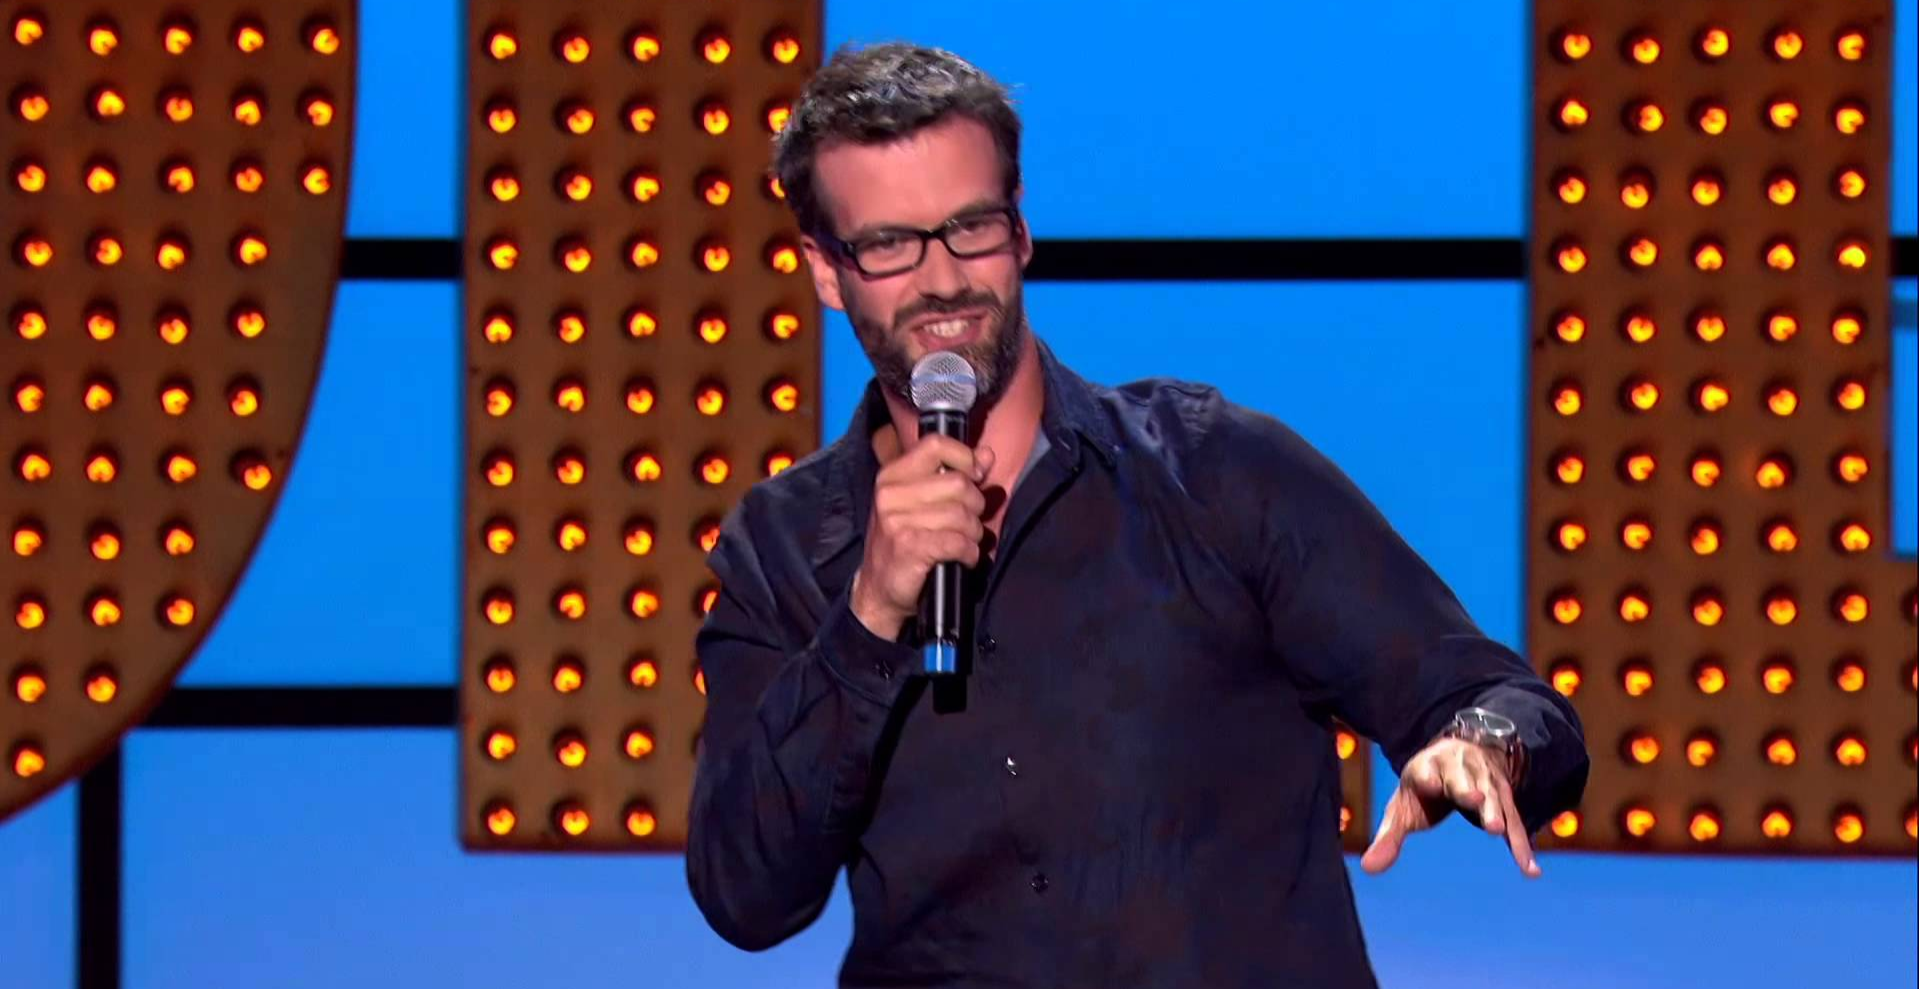 Red Imp Comedy previews presents Marcus Brigstocke